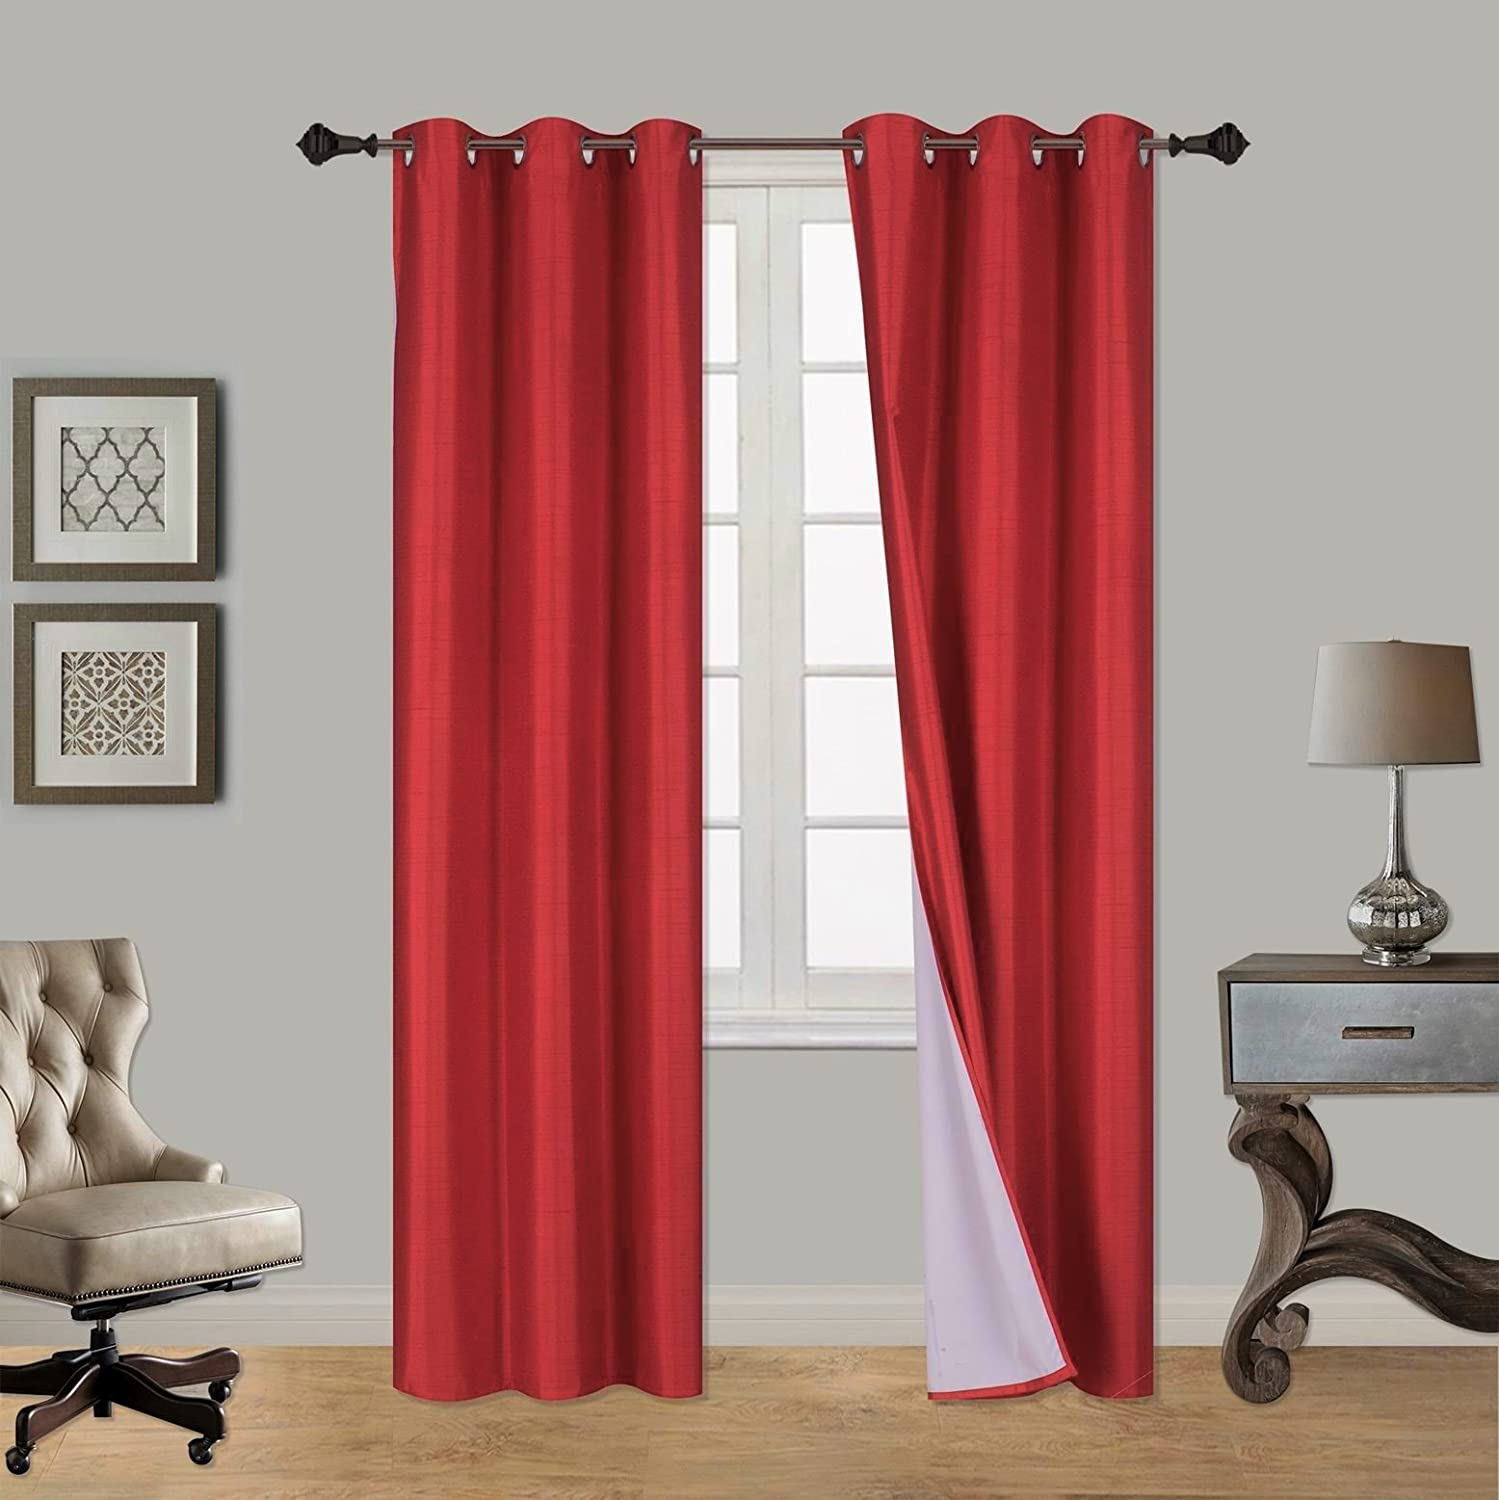 GorgeousHome (ADAM) Blackout 100% Room Darkening Guarantee Insulated Lined Thermal Window Grommets Curtain Red